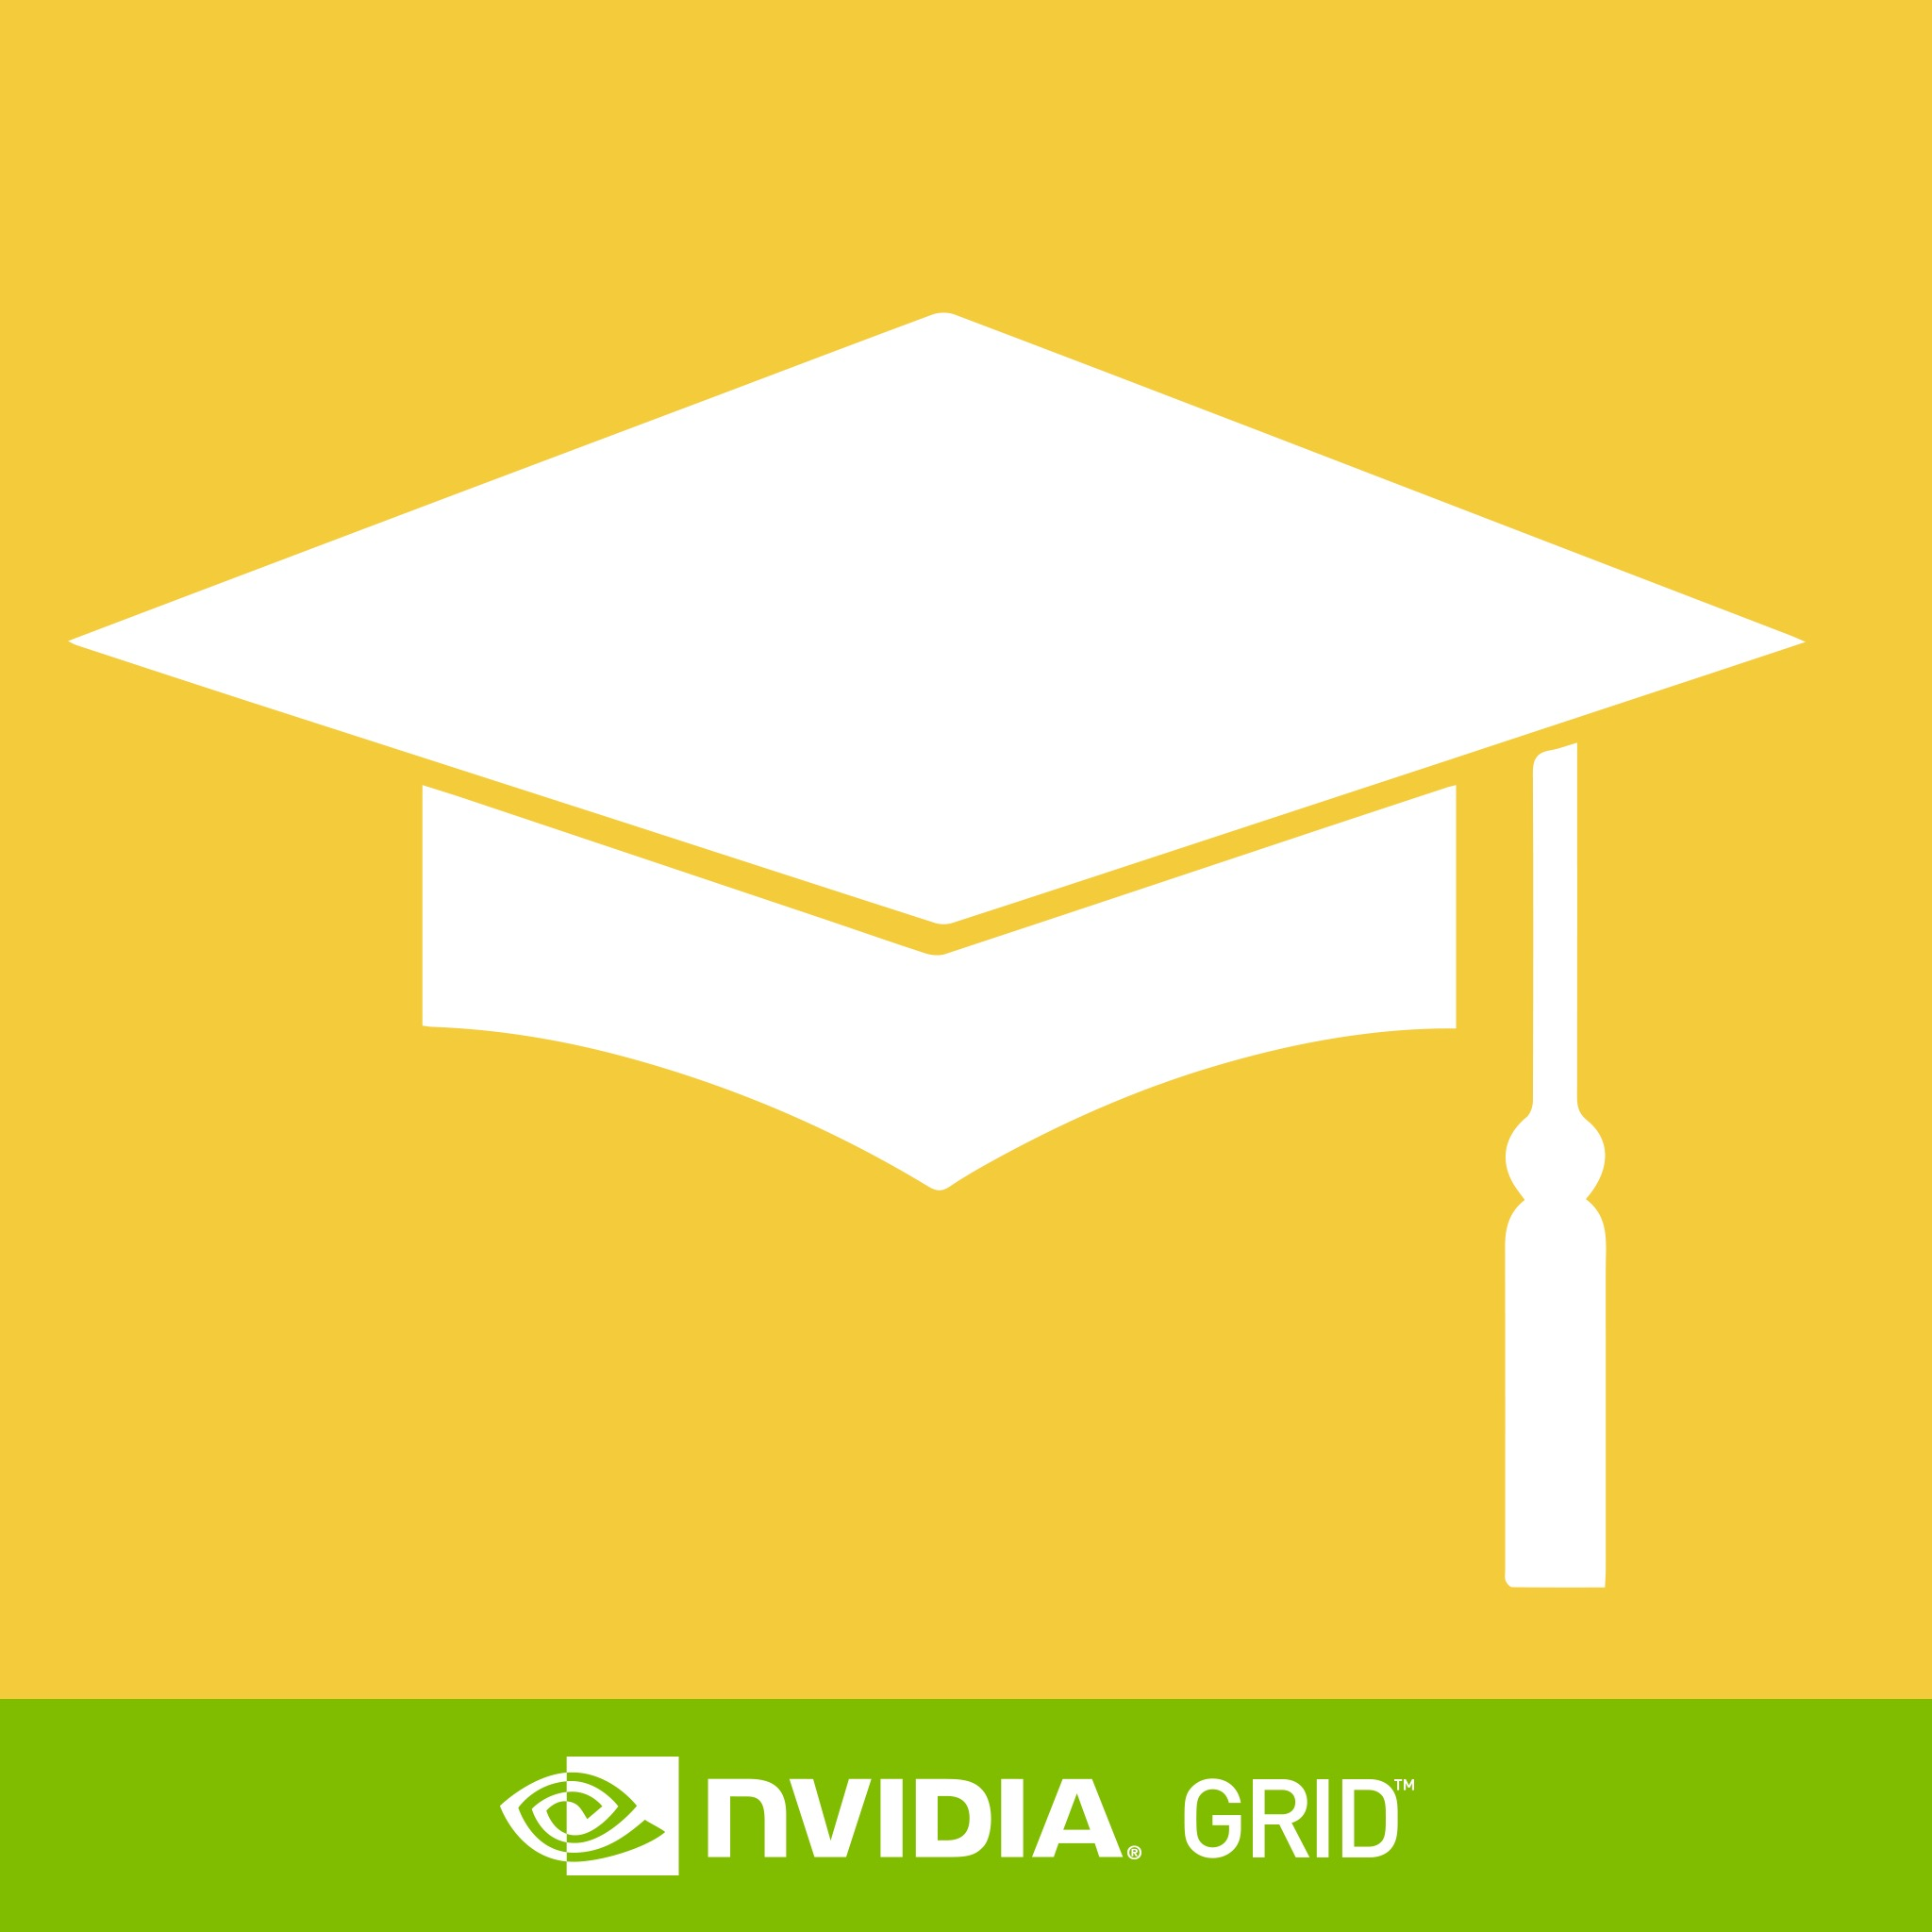 NVIDIA GRID for Education